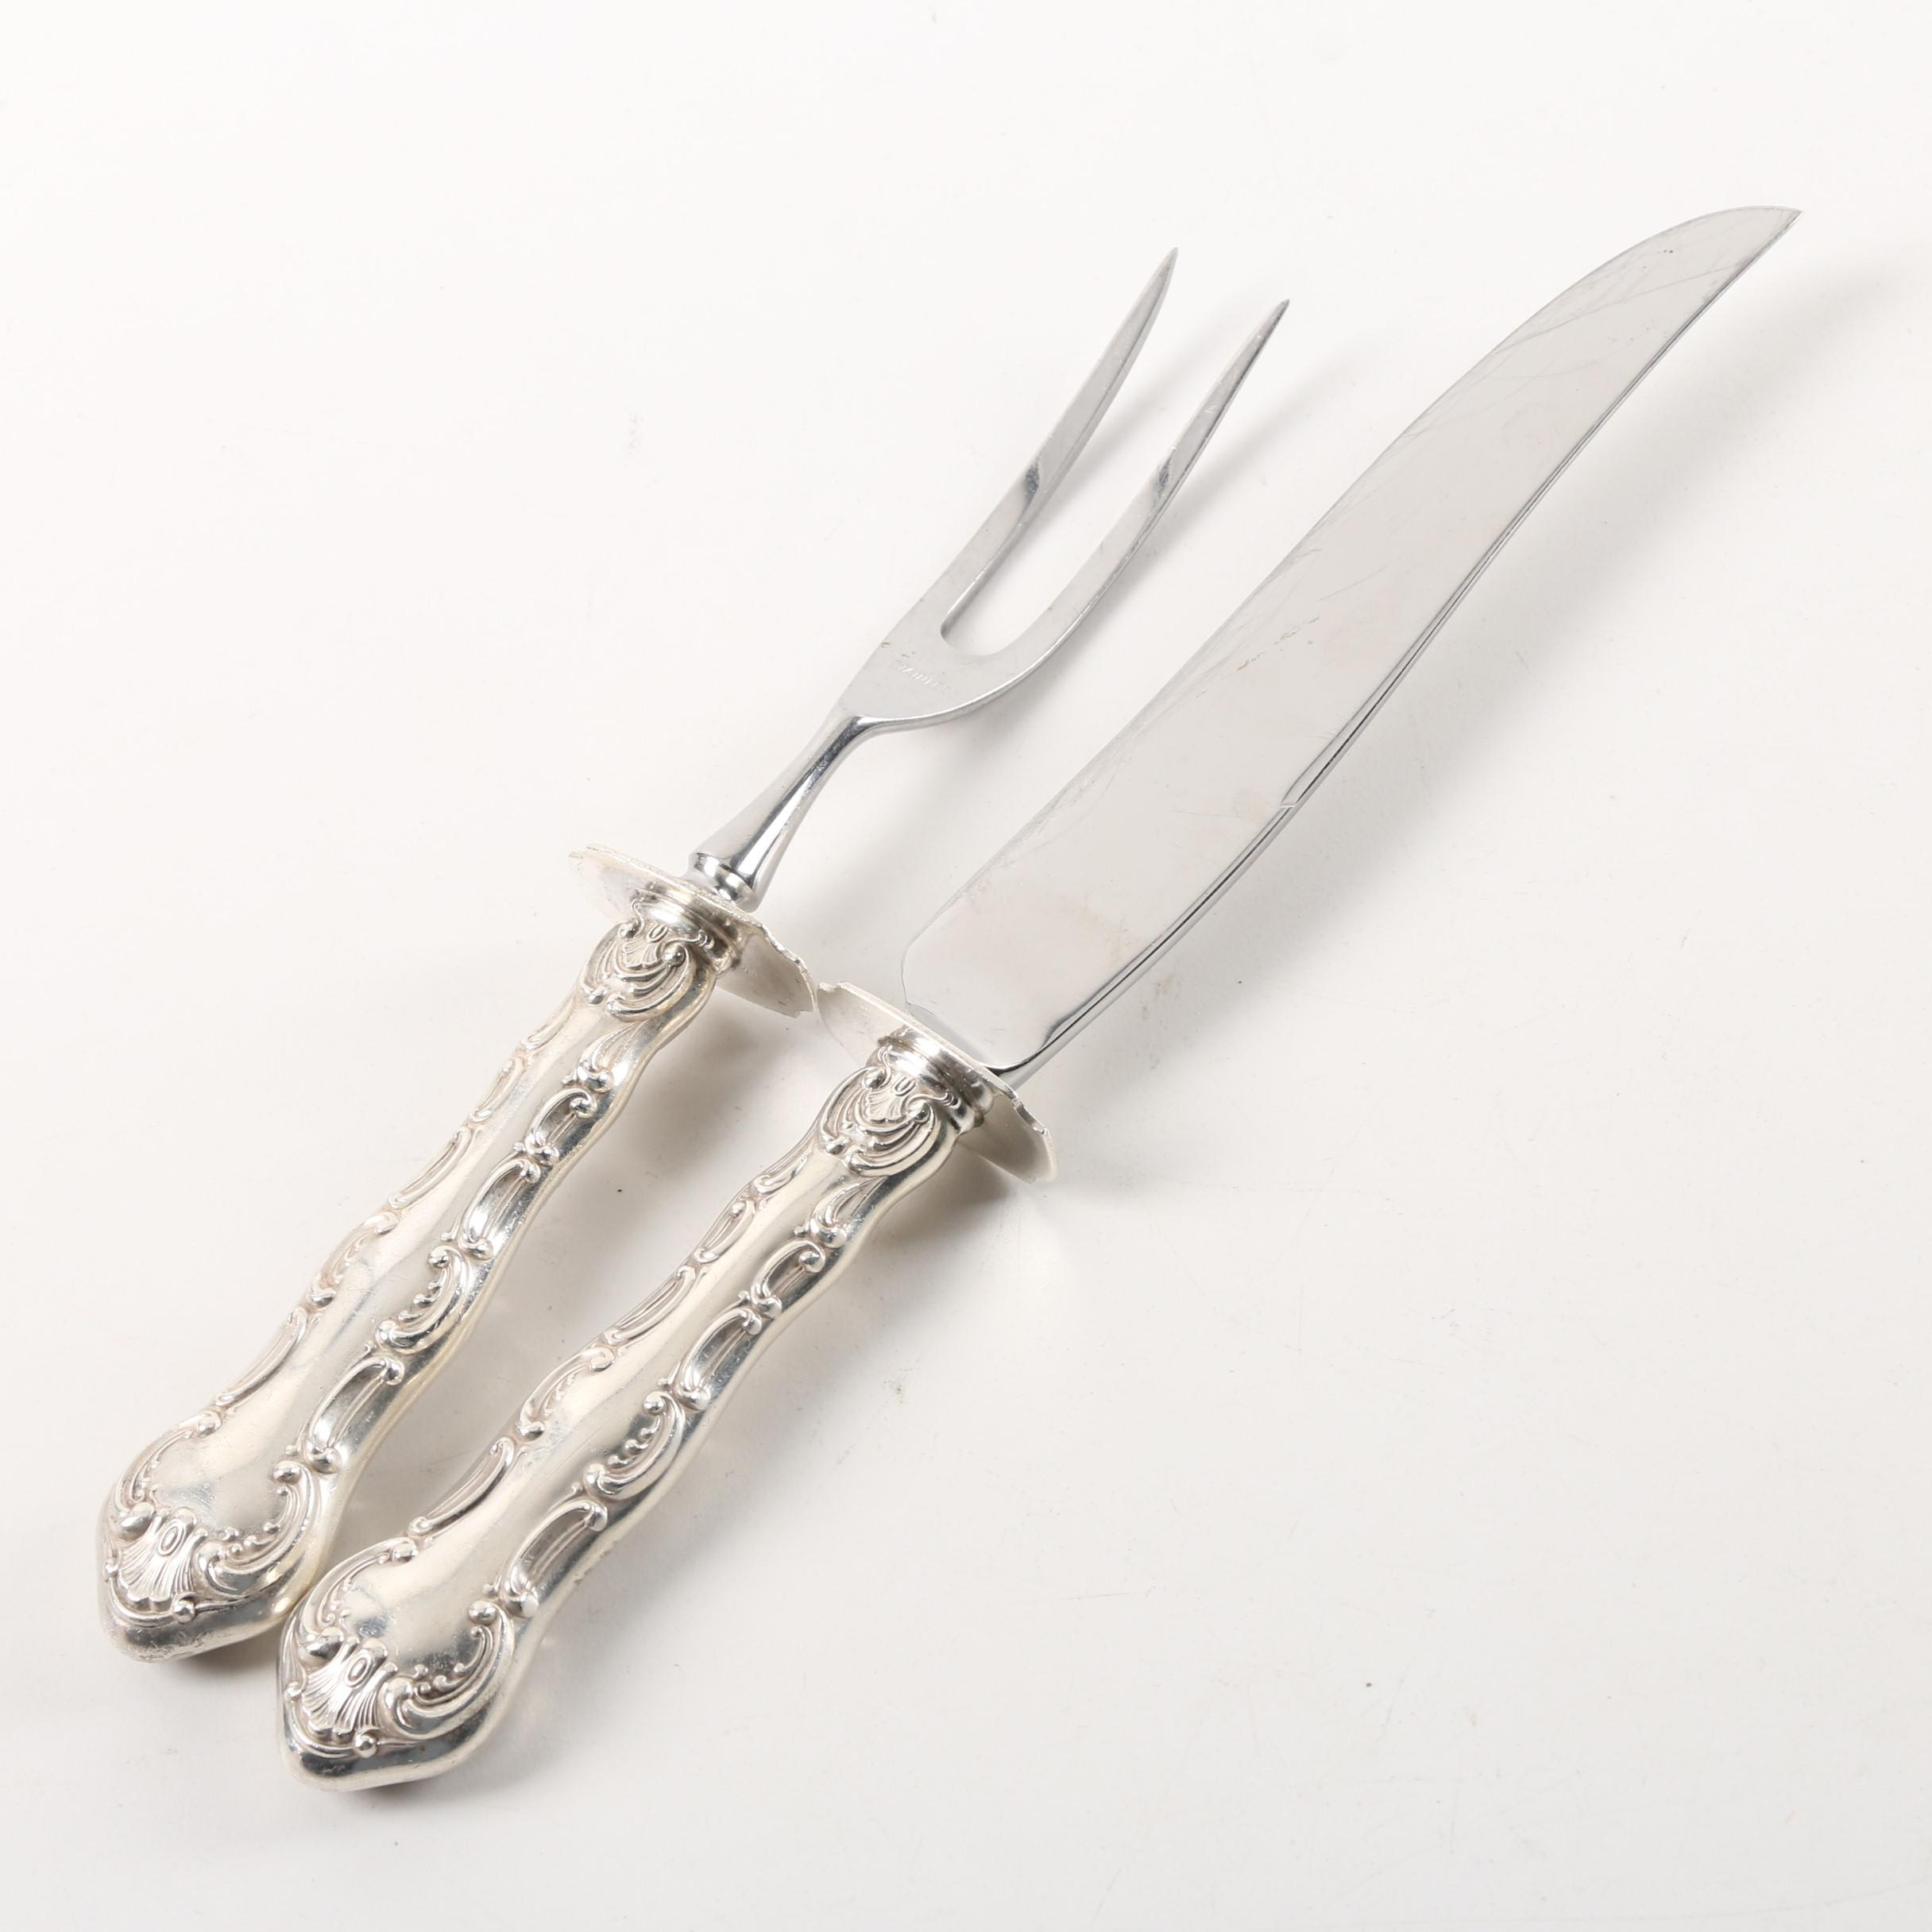 Silver Plate and Stainless Steel Carving Set